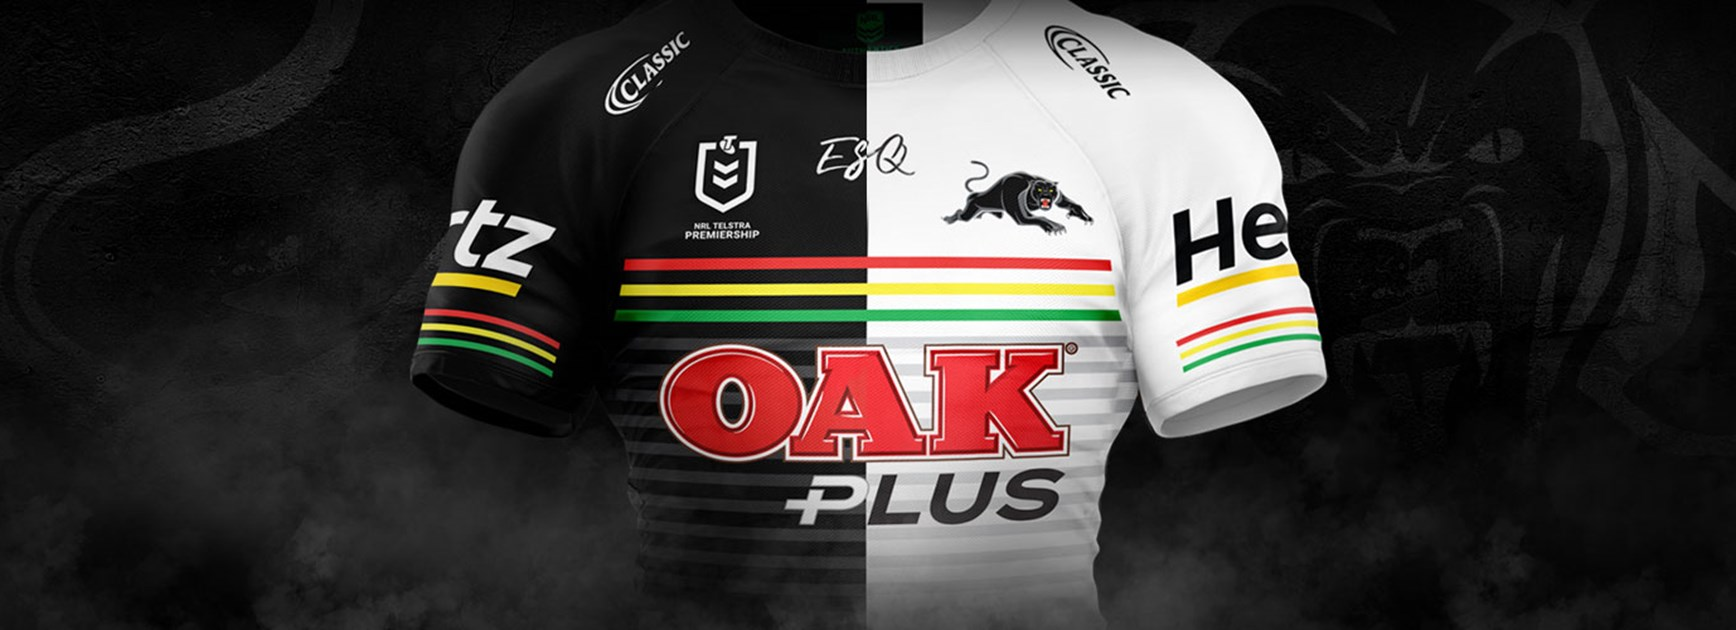 Revealed: 2019 Home and Away Jerseys